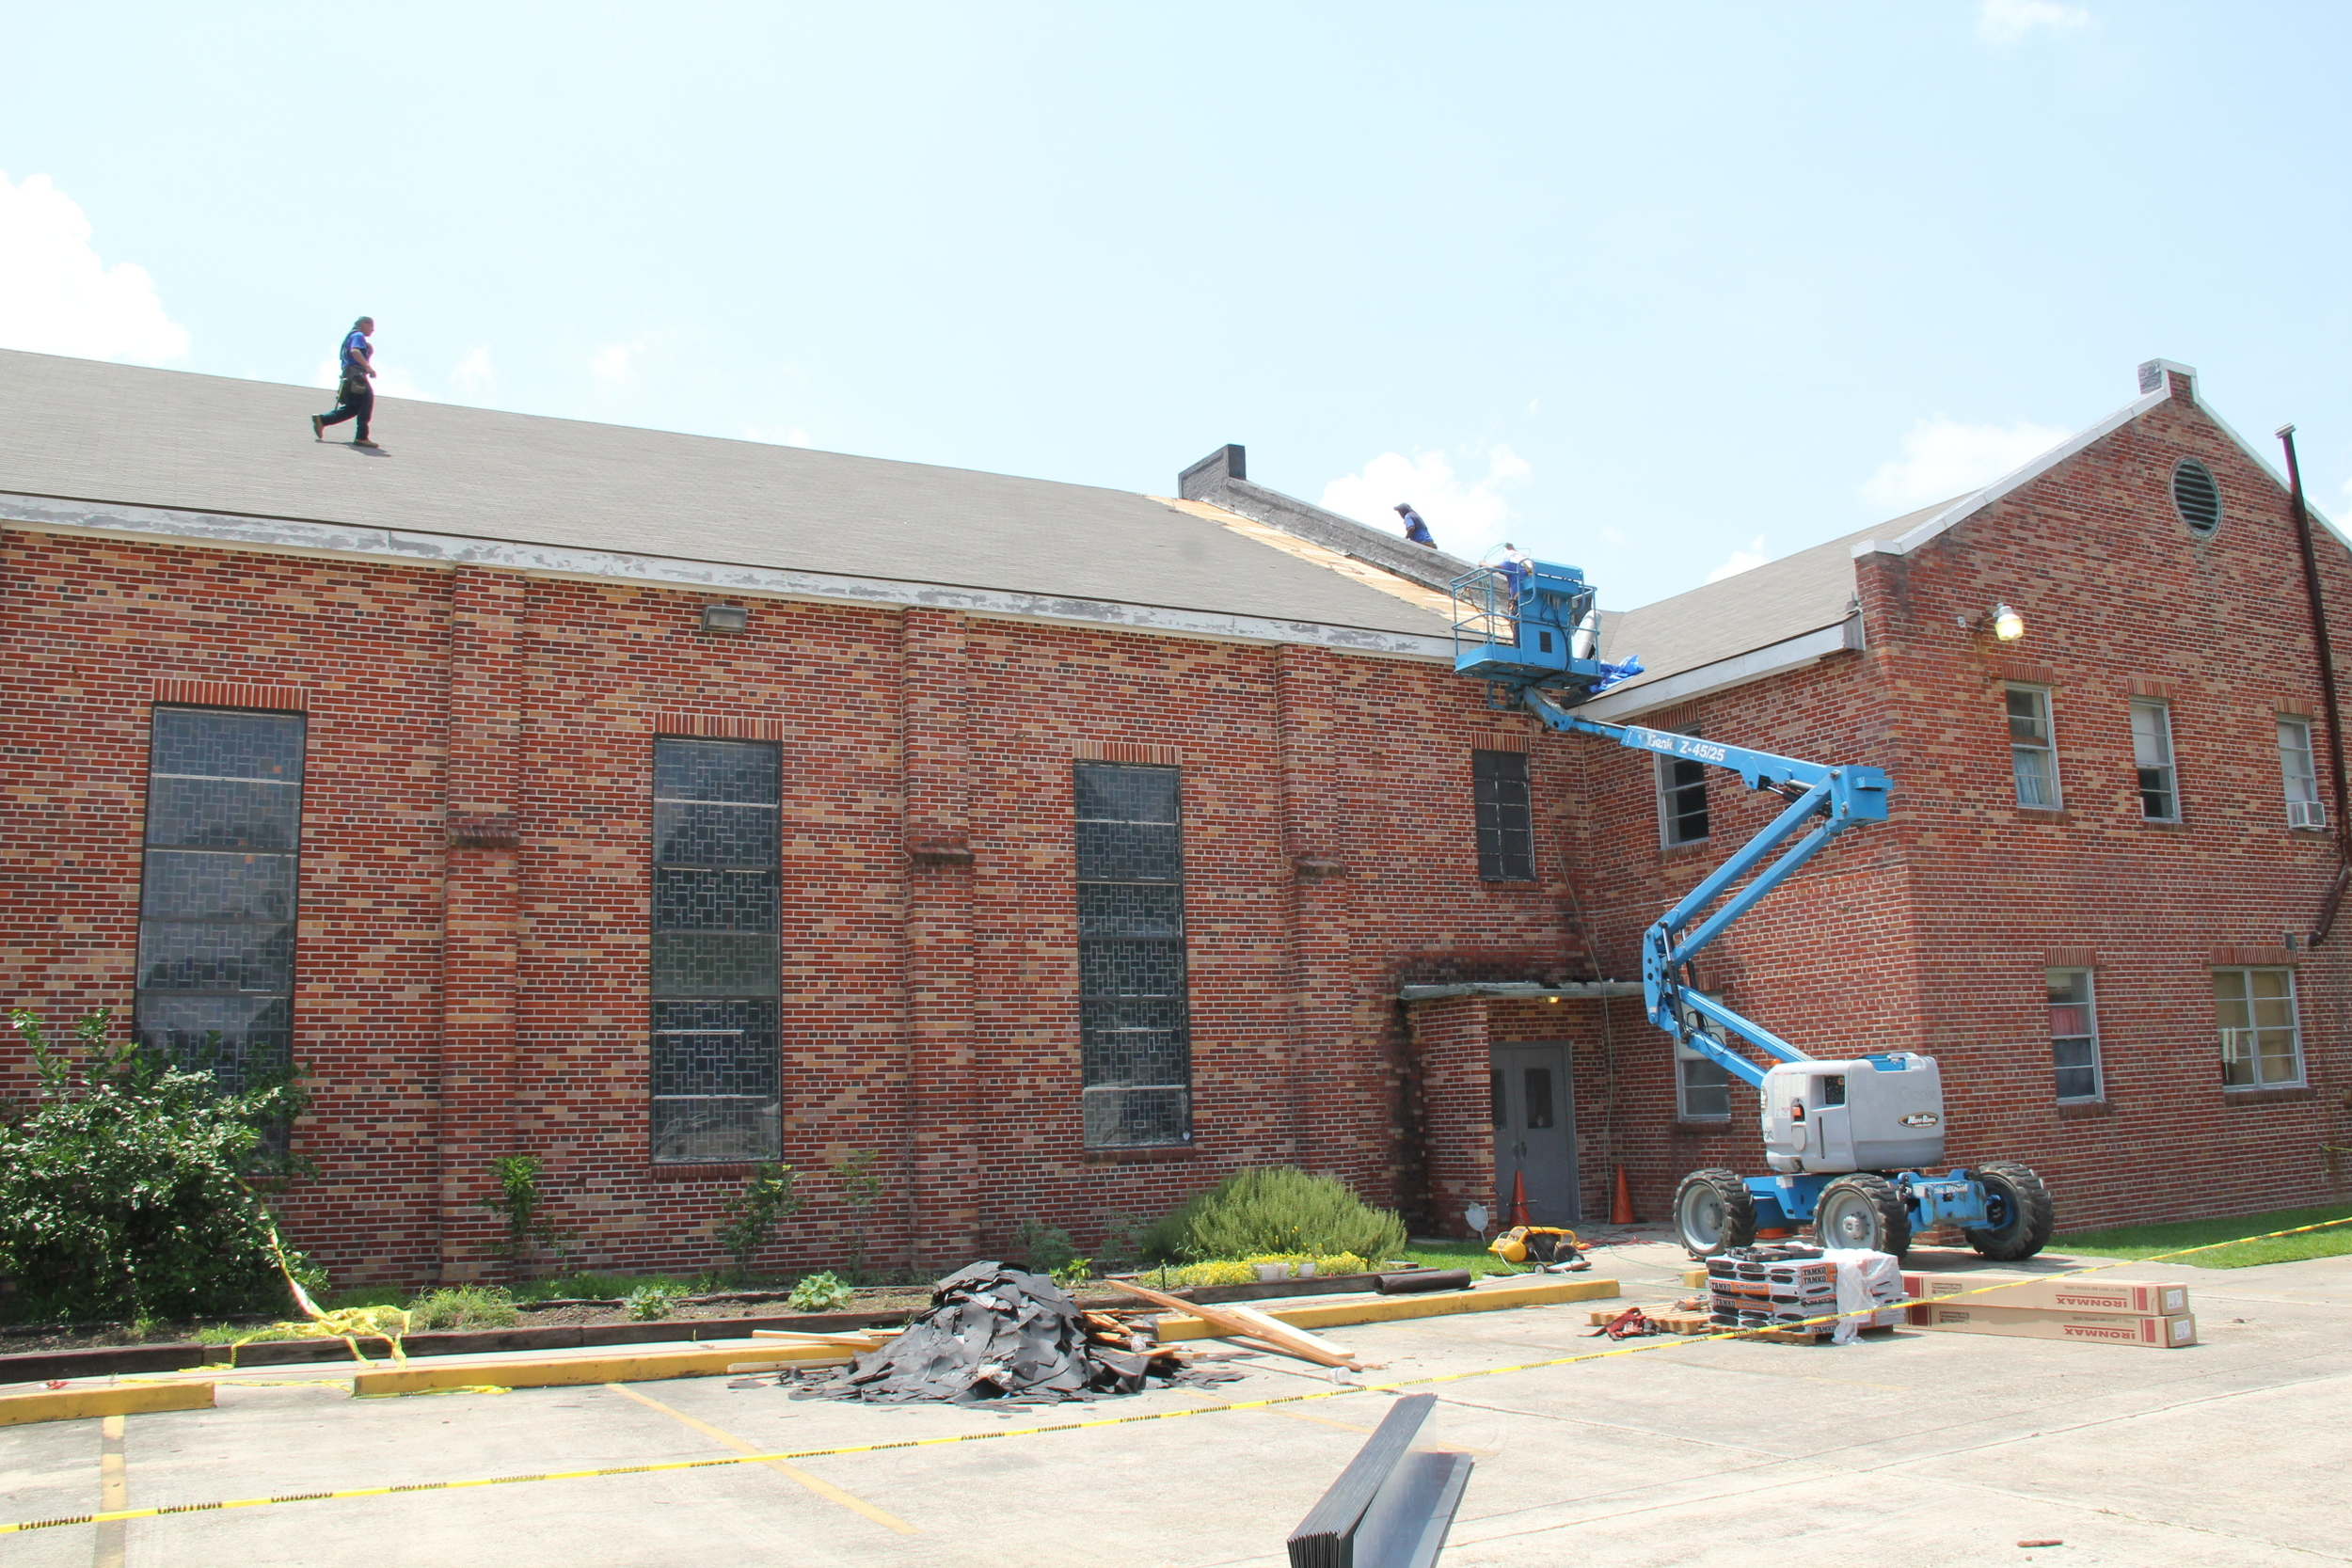 Healing Place Church / Baton Rouge Dream Center Campus